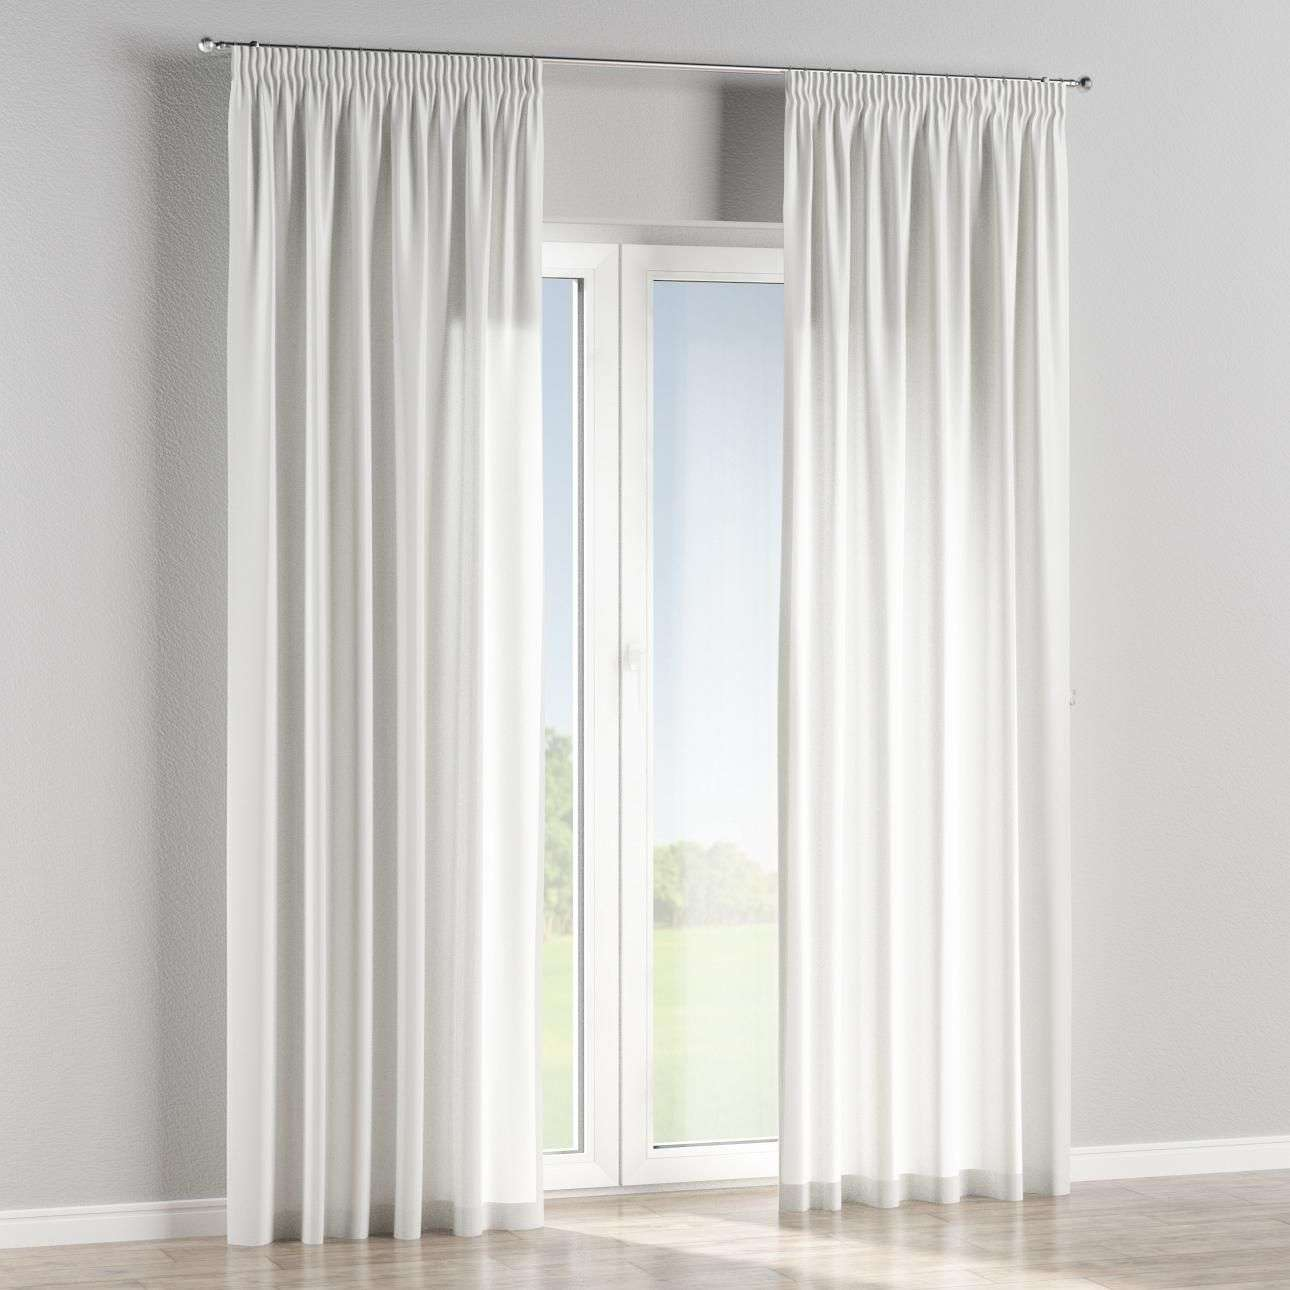 Pencil pleat curtains in collection Milano, fabric: 150-27